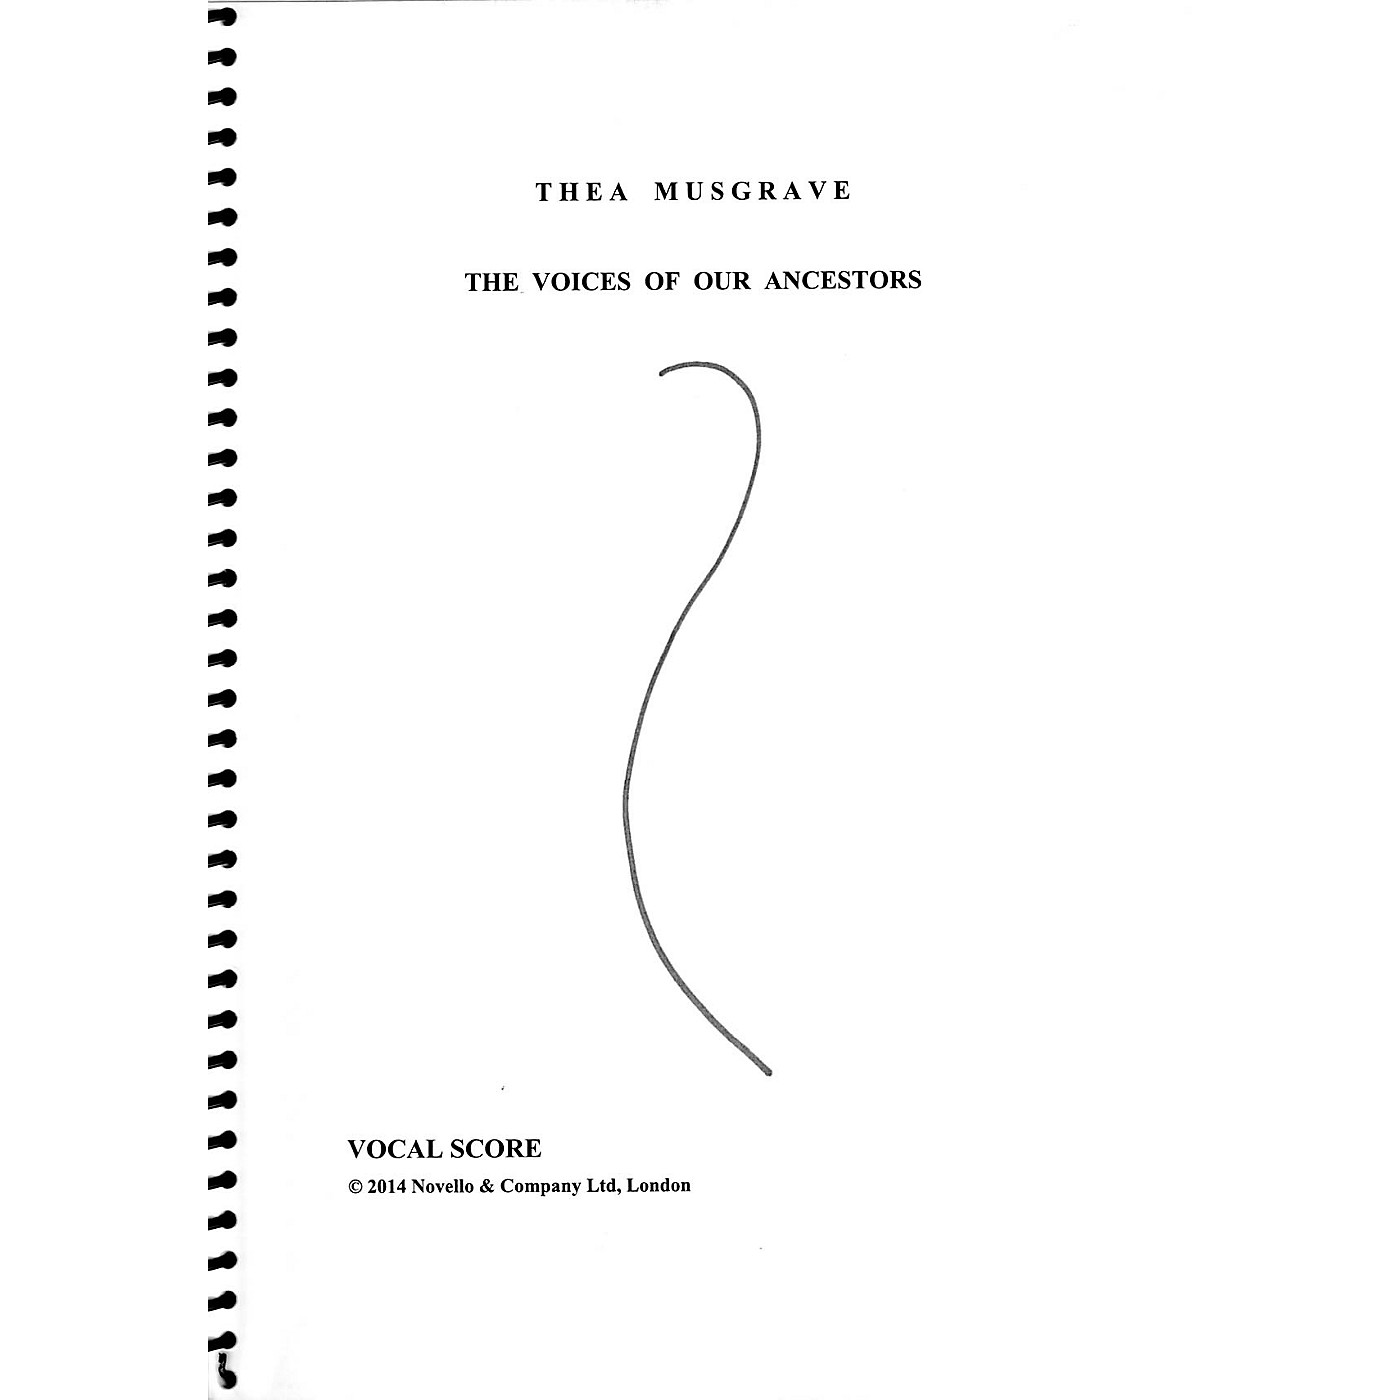 Novello The Voices of Our Ancestors (for SATB chorus, brass quintet and organ) SATB Score by Thea Musgrave thumbnail